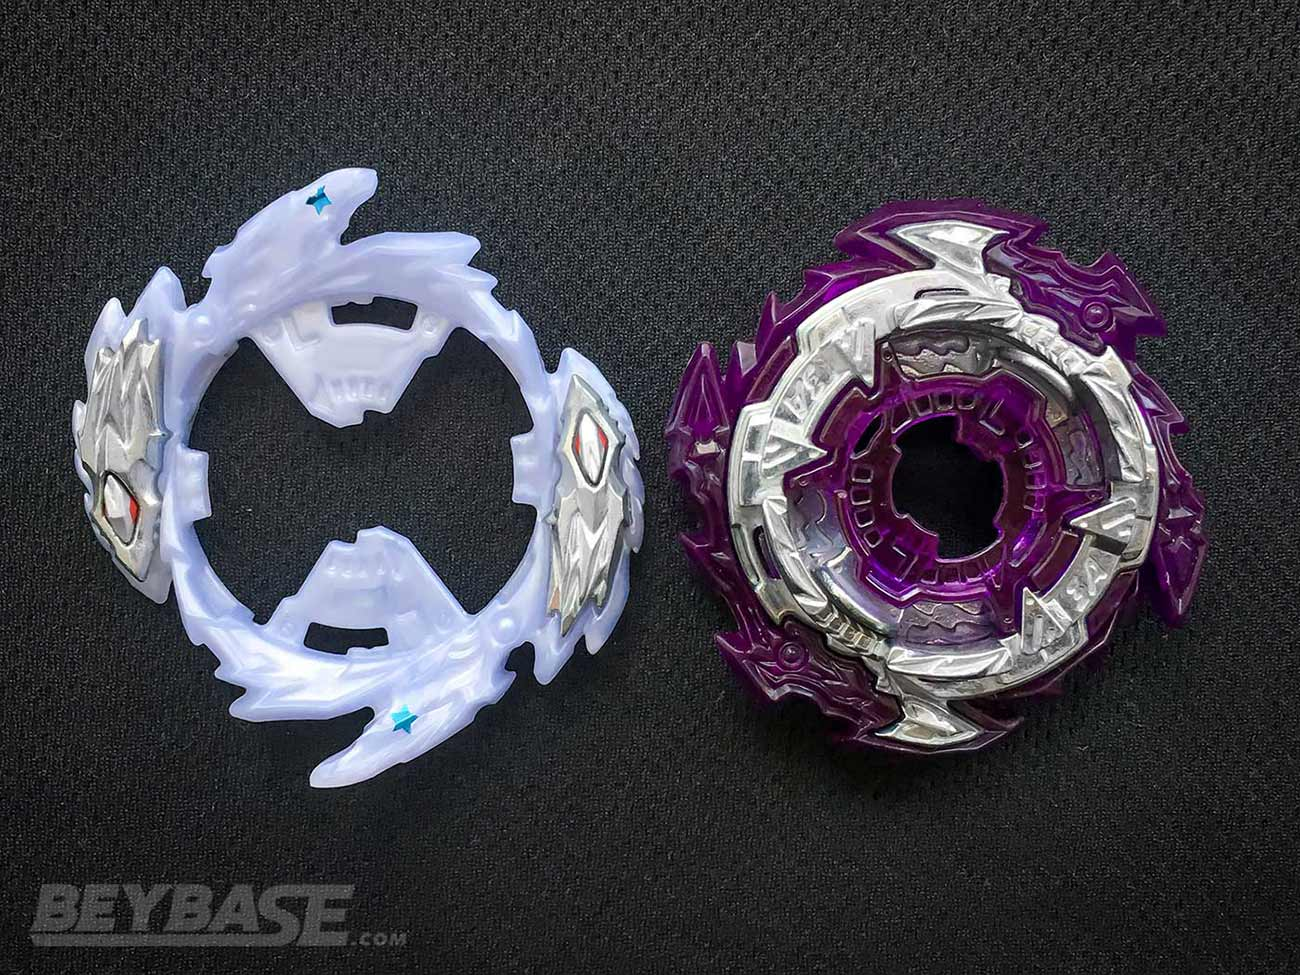 rage ring and 3a chassis beyblade burst parts